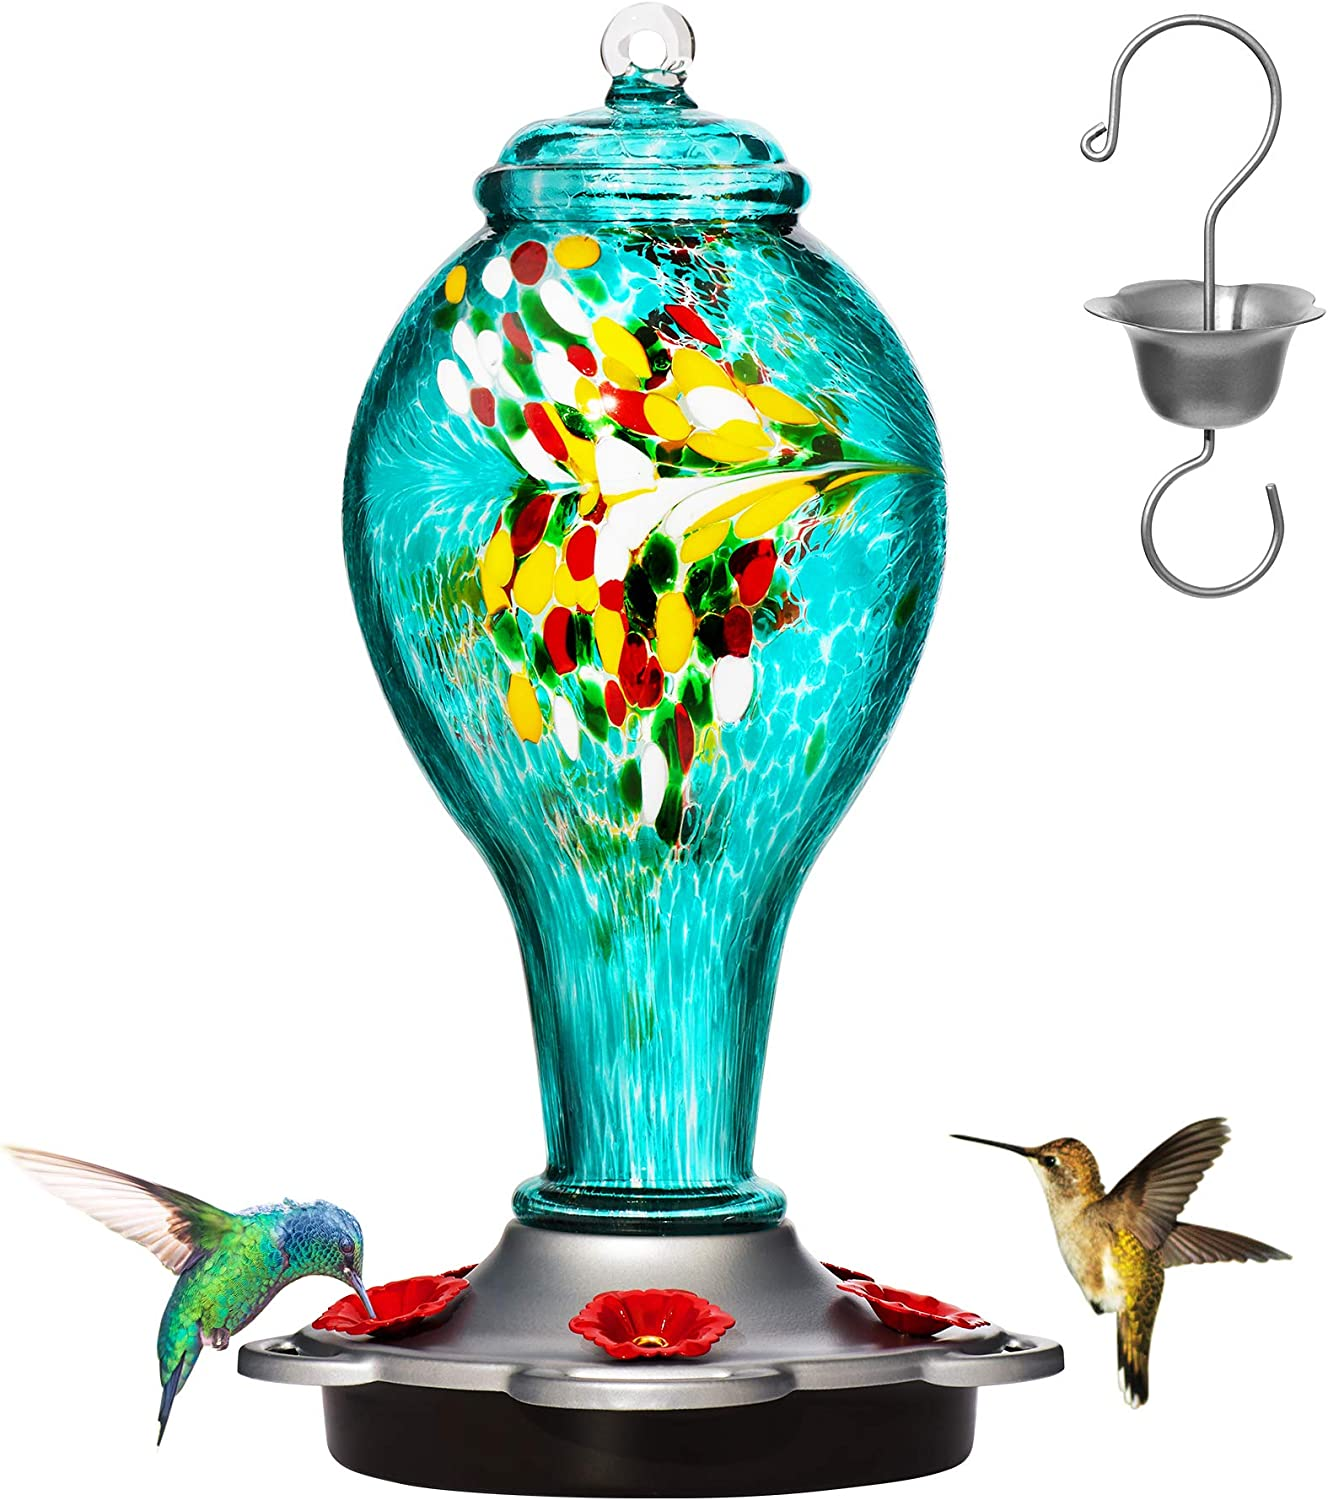 LUJII Hummingbird Feeder for Outdoors, Hand Blown Glass Humming Bird Feeder,Premium Bird feeders Leakproof with 25 Ounces Nectar Capacit and Easy to Clean & Filling,Include Hook&Ant Moat.(Blue)